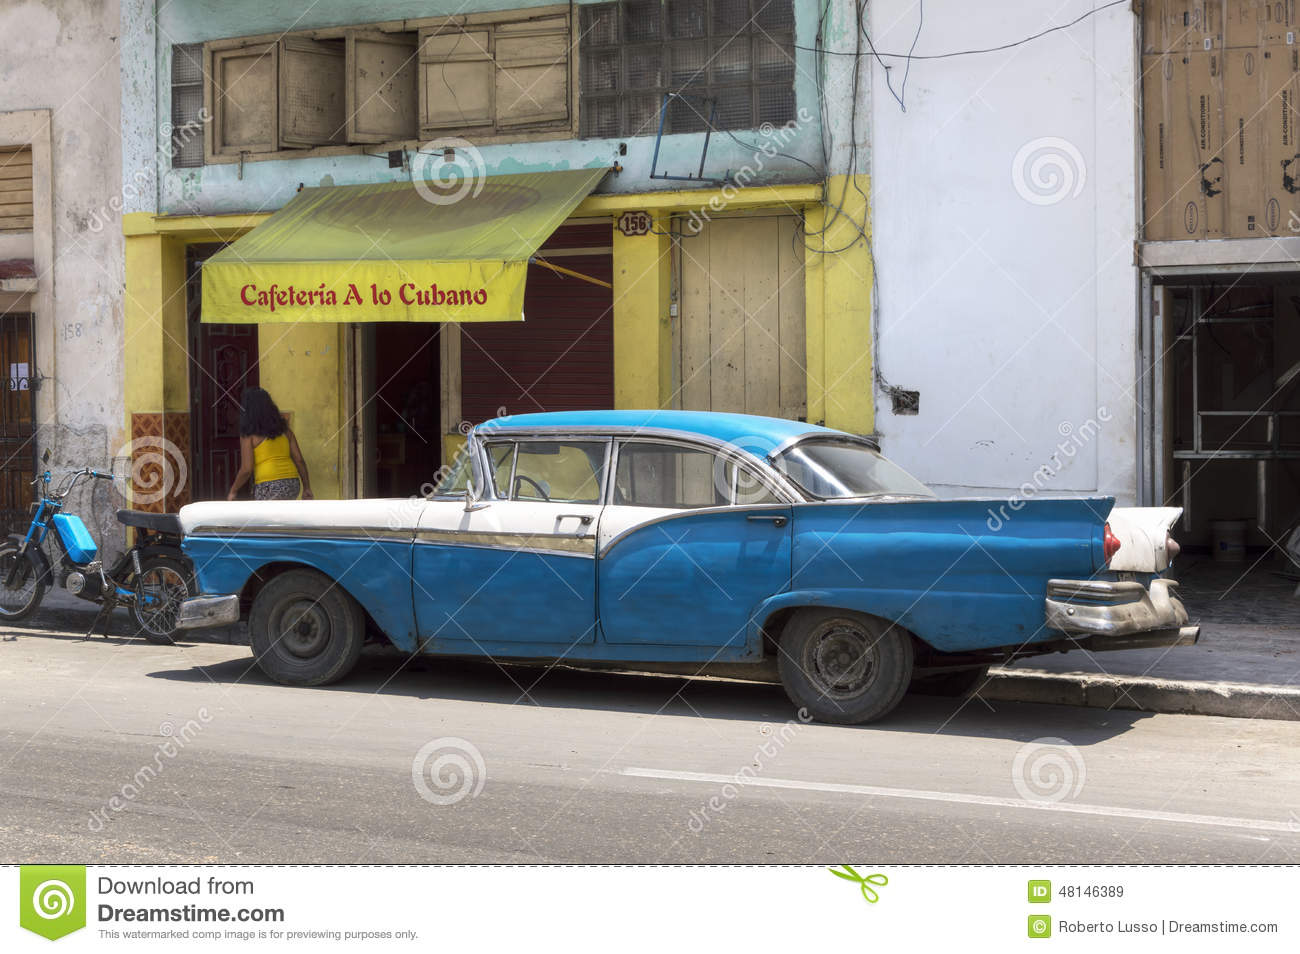 voiture classique am ricaine devant un caf local la havane cuba image stock ditorial. Black Bedroom Furniture Sets. Home Design Ideas